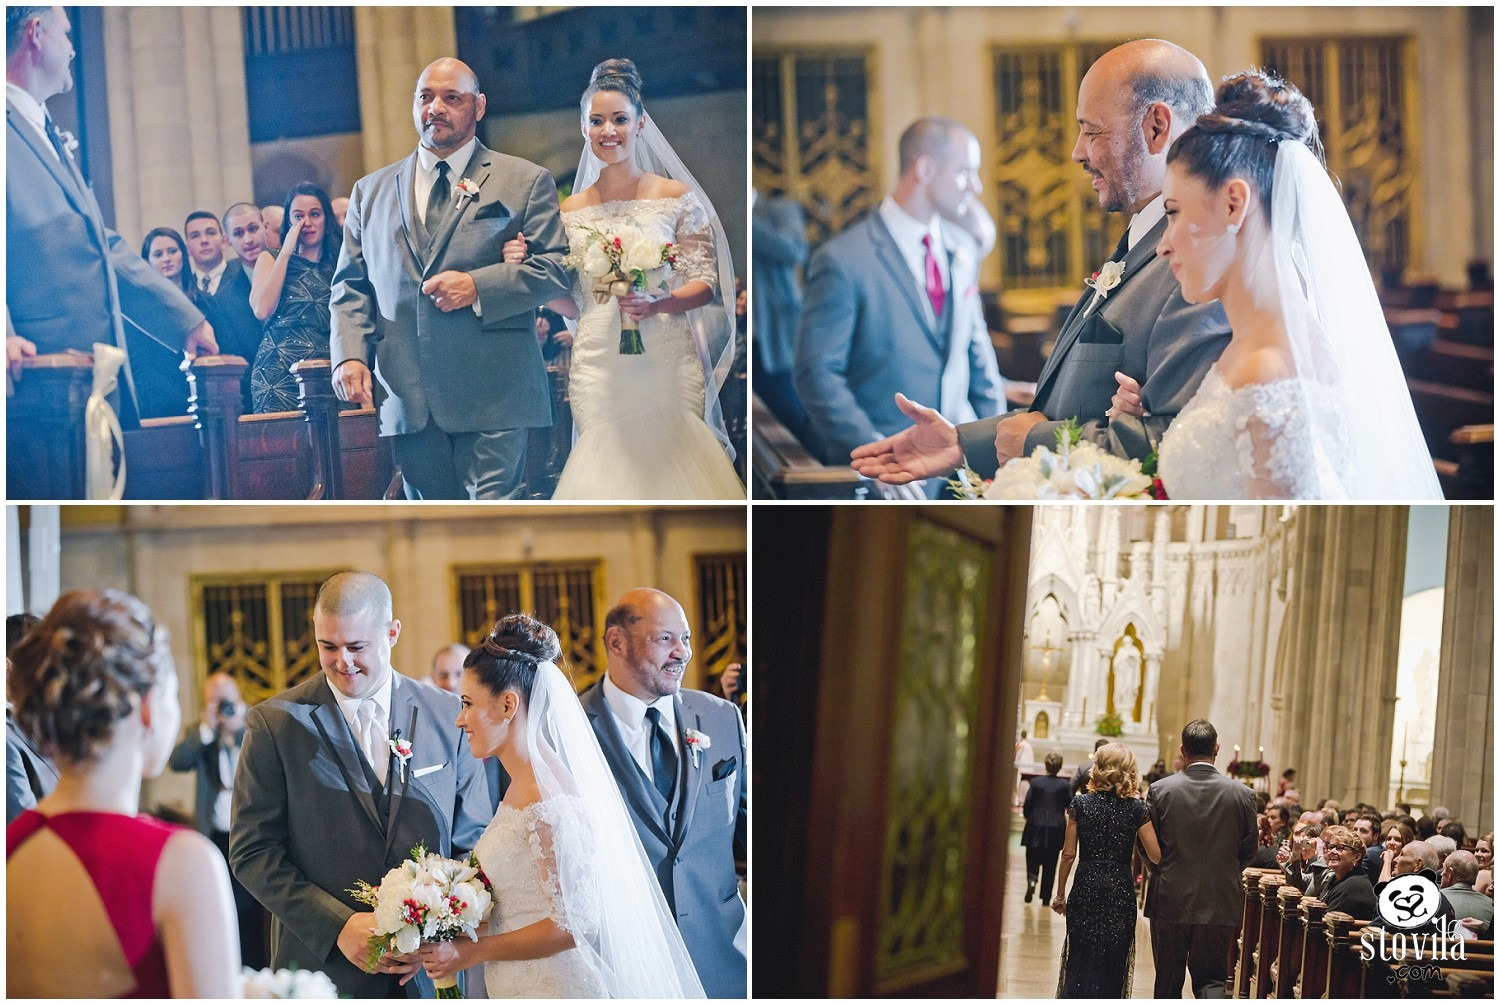 KB_Tirrell Room Wedding, Boston - Gate of Heaven Church - STOVILA Photography (16)